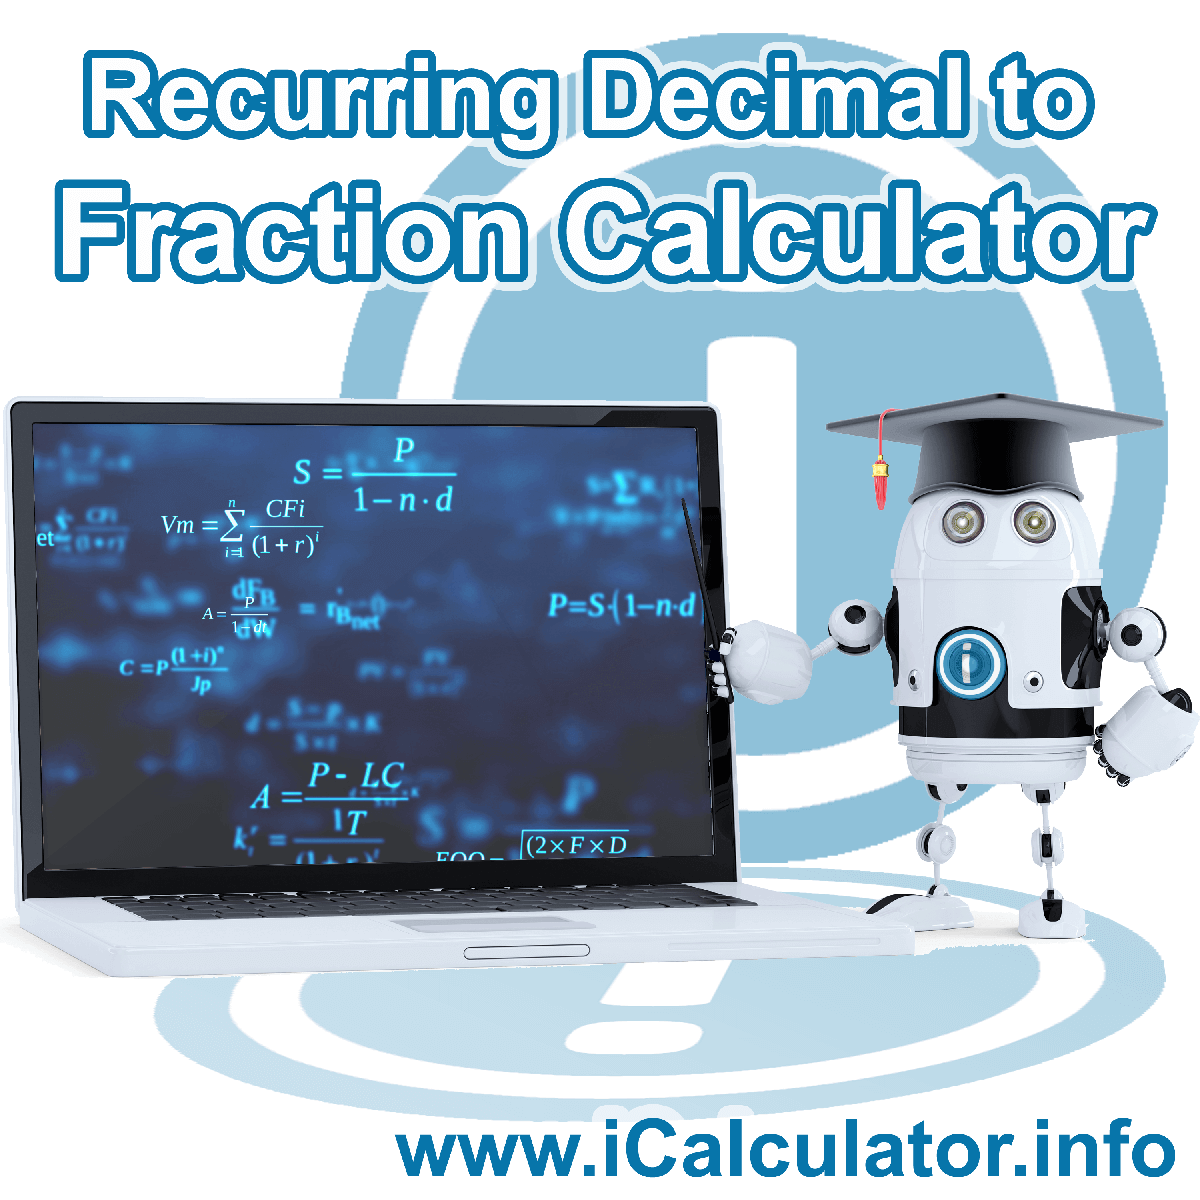 Recurring Decimal to Fraction Calculator: This image shows Recurring Decimal to Fraction formula and algorythms associated calculations used by the Recurring Decimal to Fraction Calculator